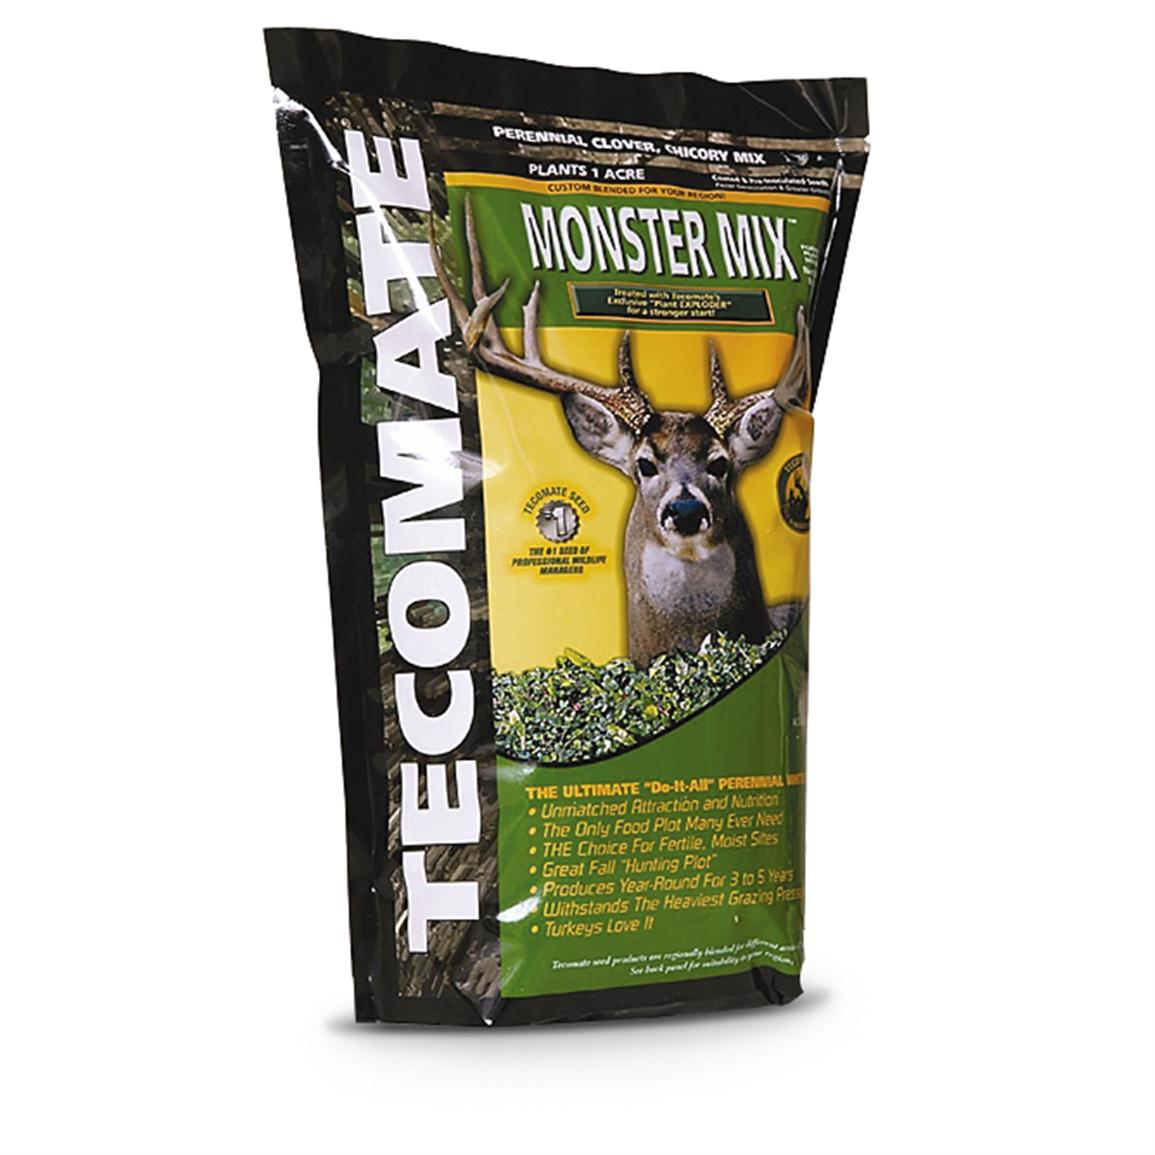 Tecomate® Monster Mix®